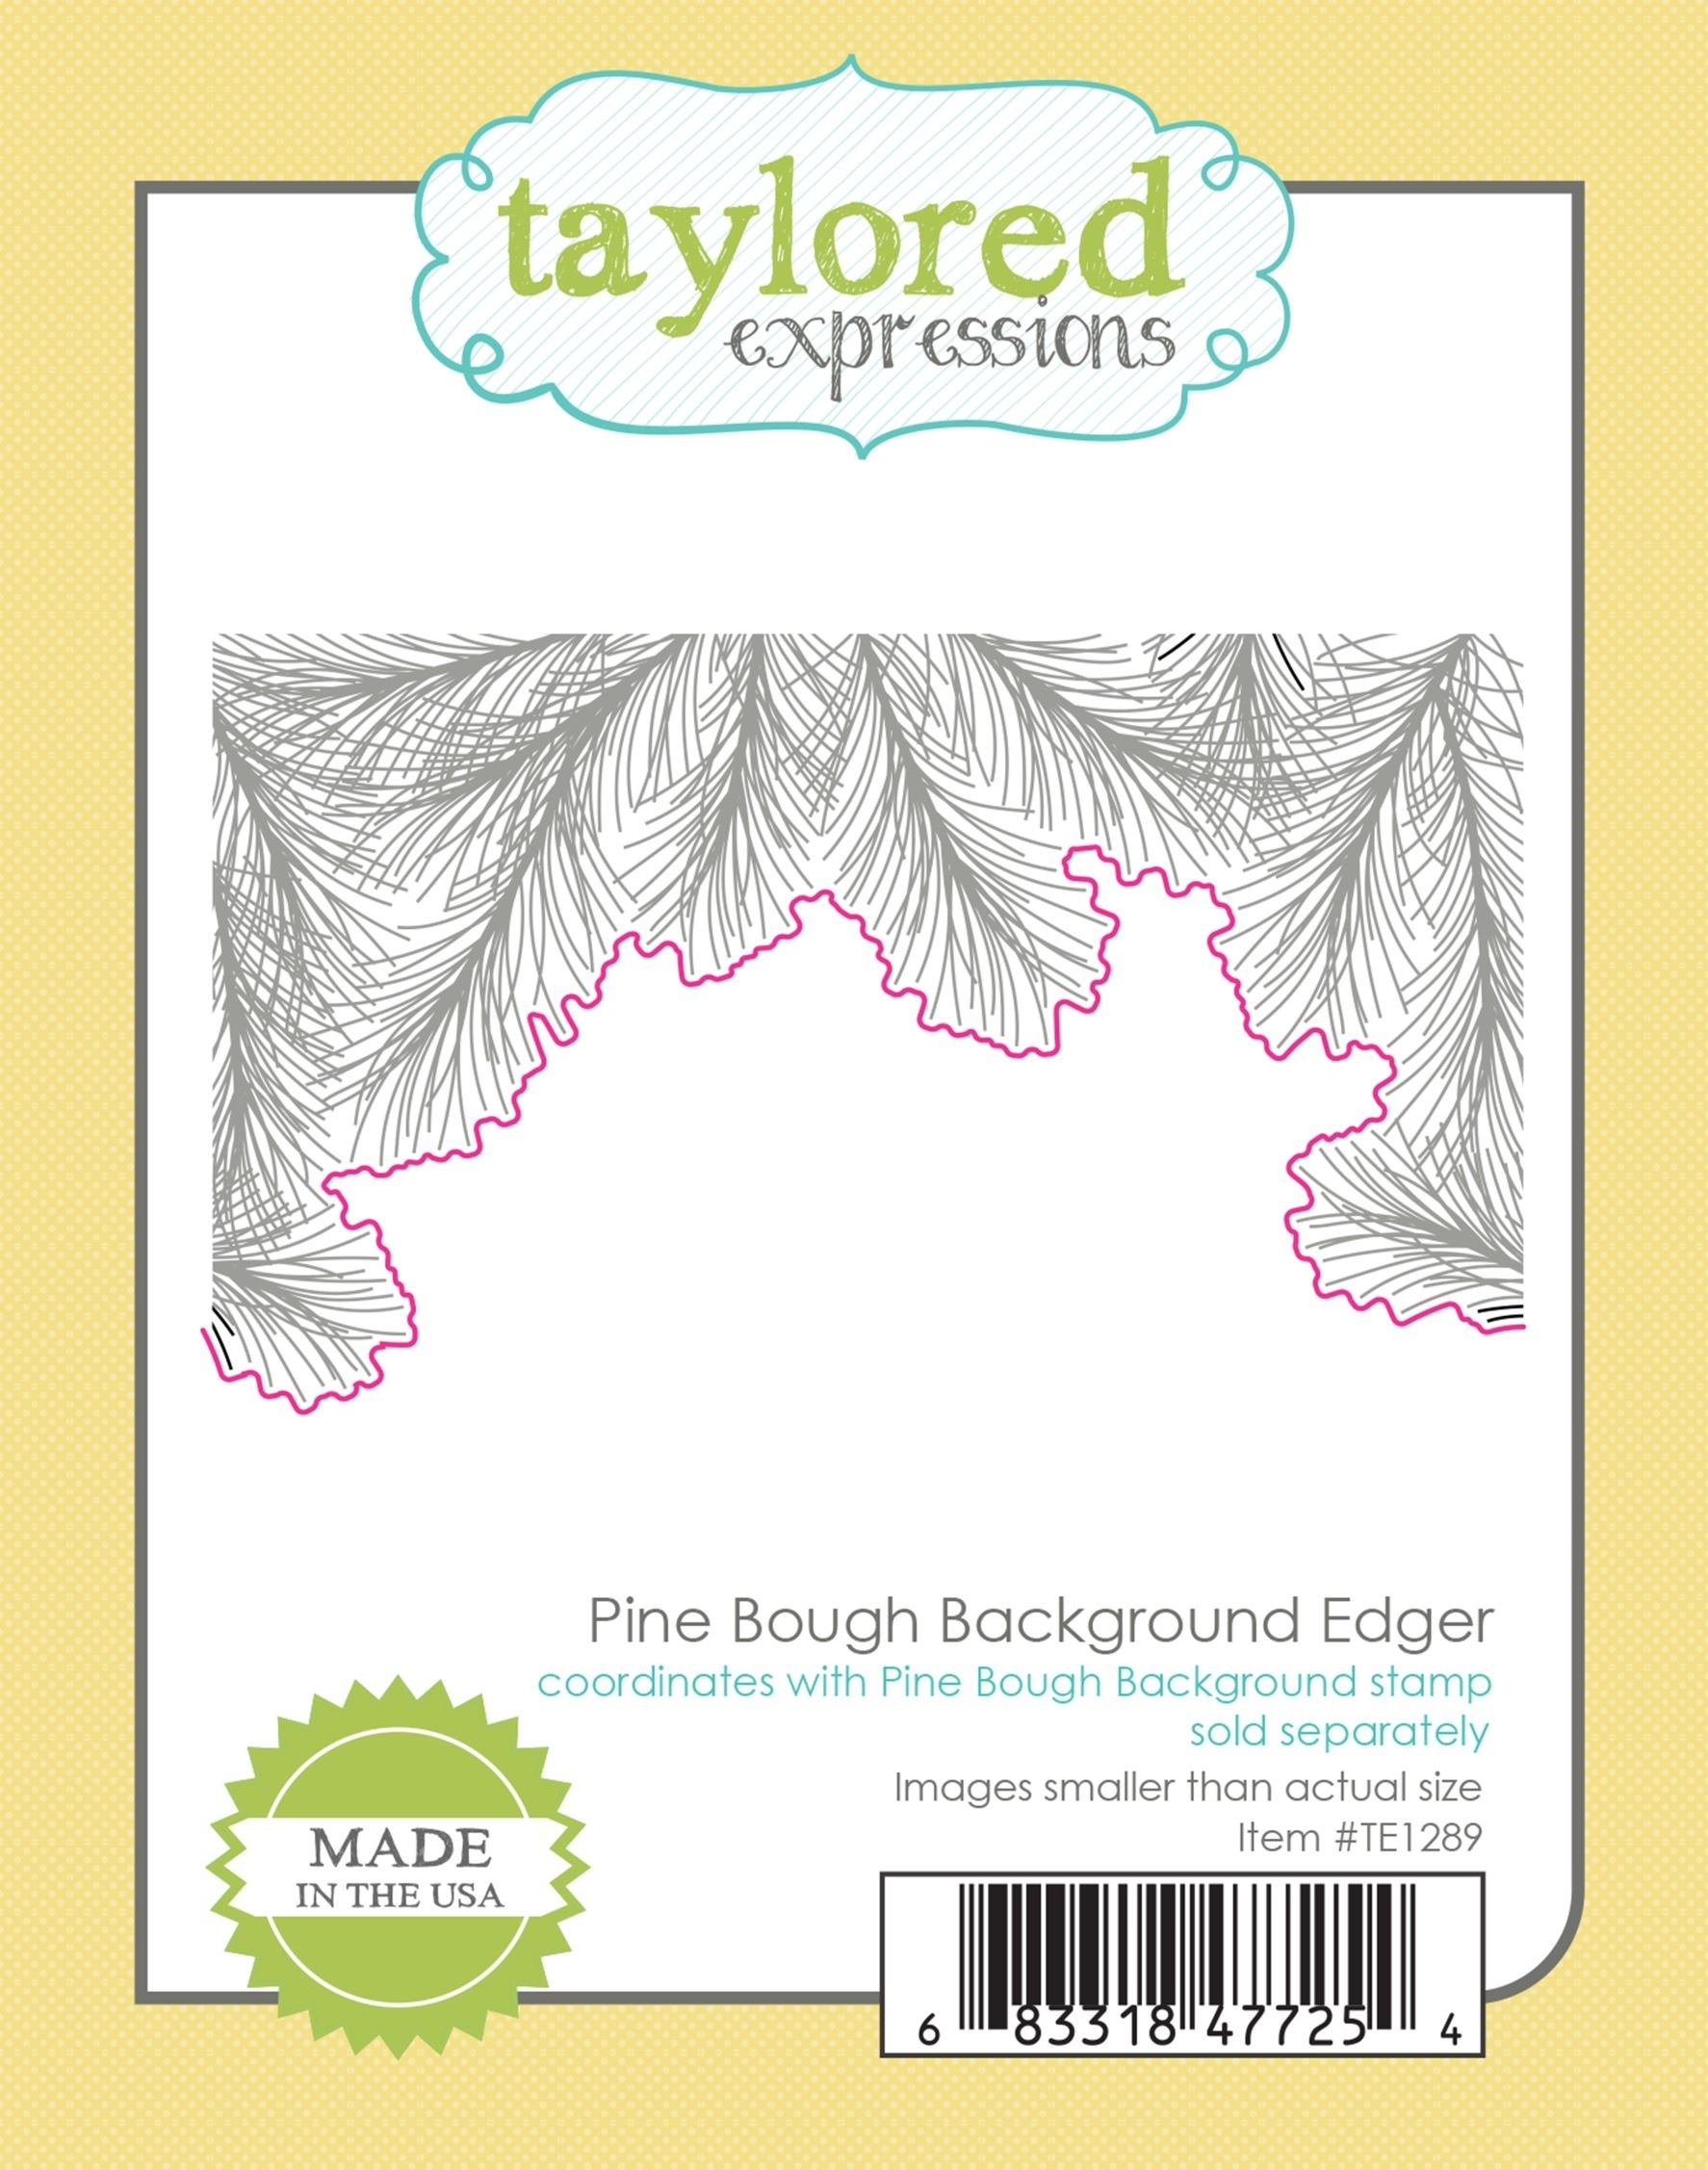 Taylored Expression - Pine Bough Background Edger